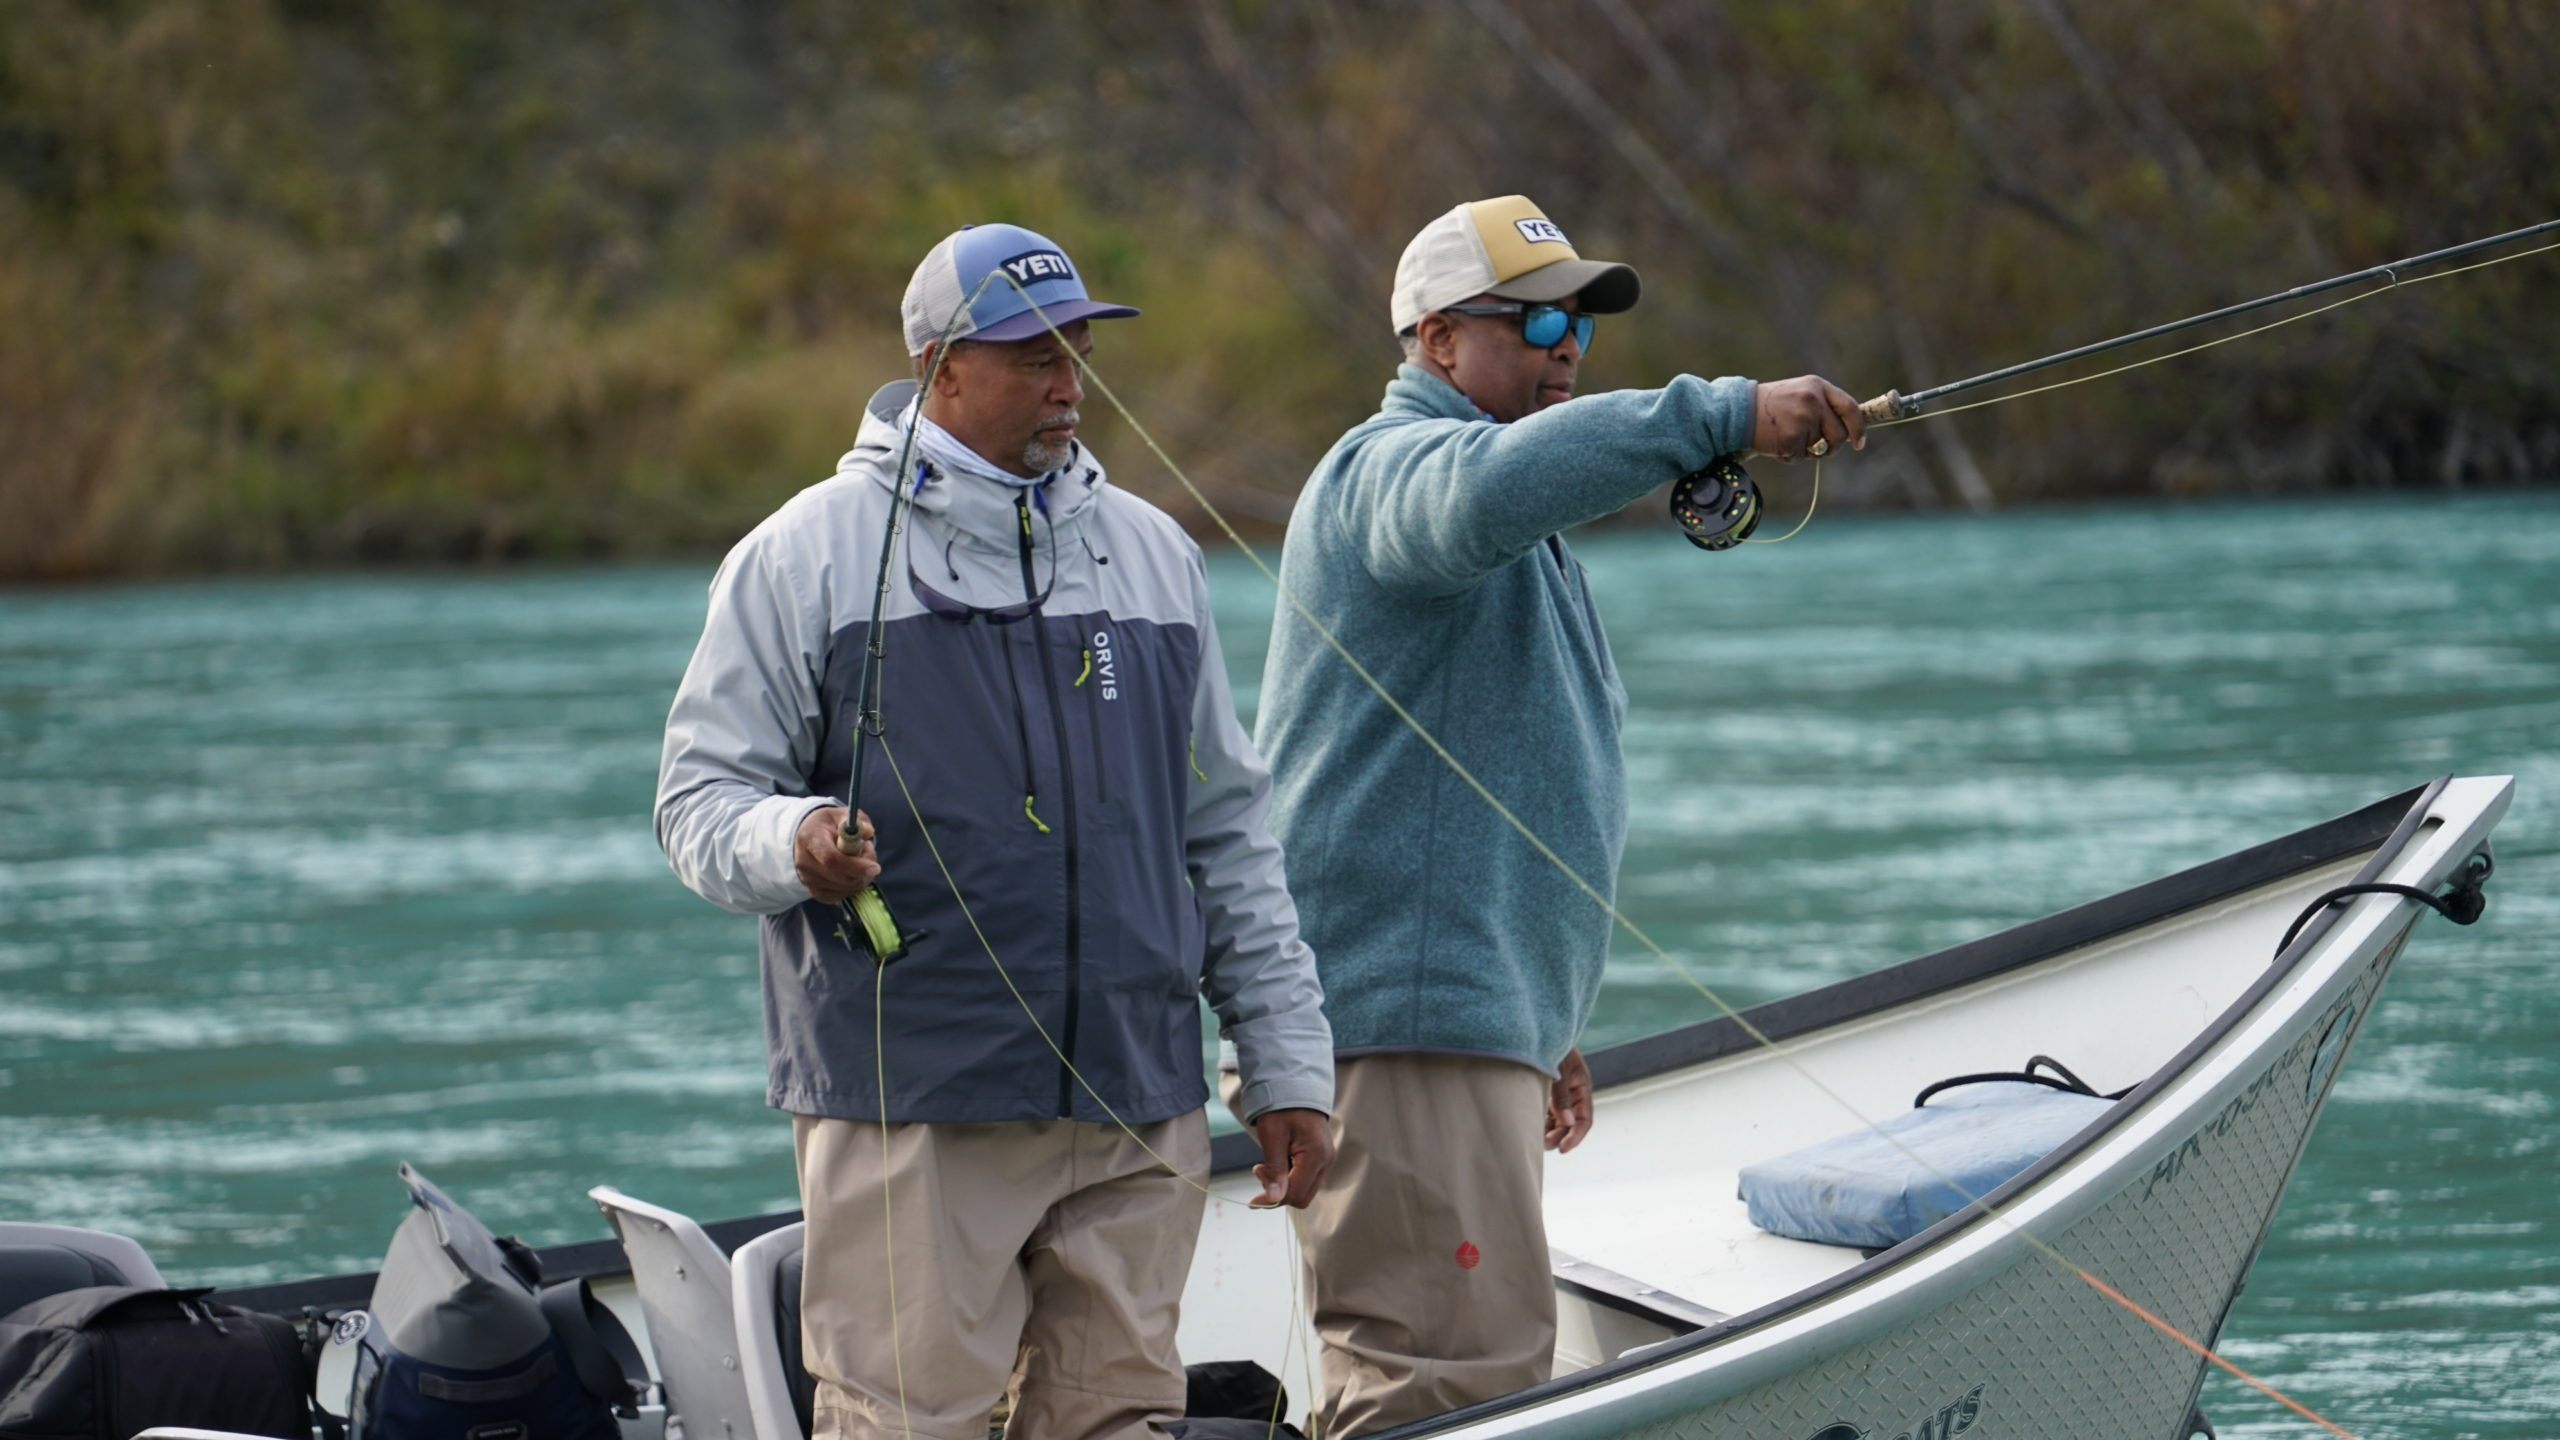 Check Out: Reel Fishing with Upstream TV Show